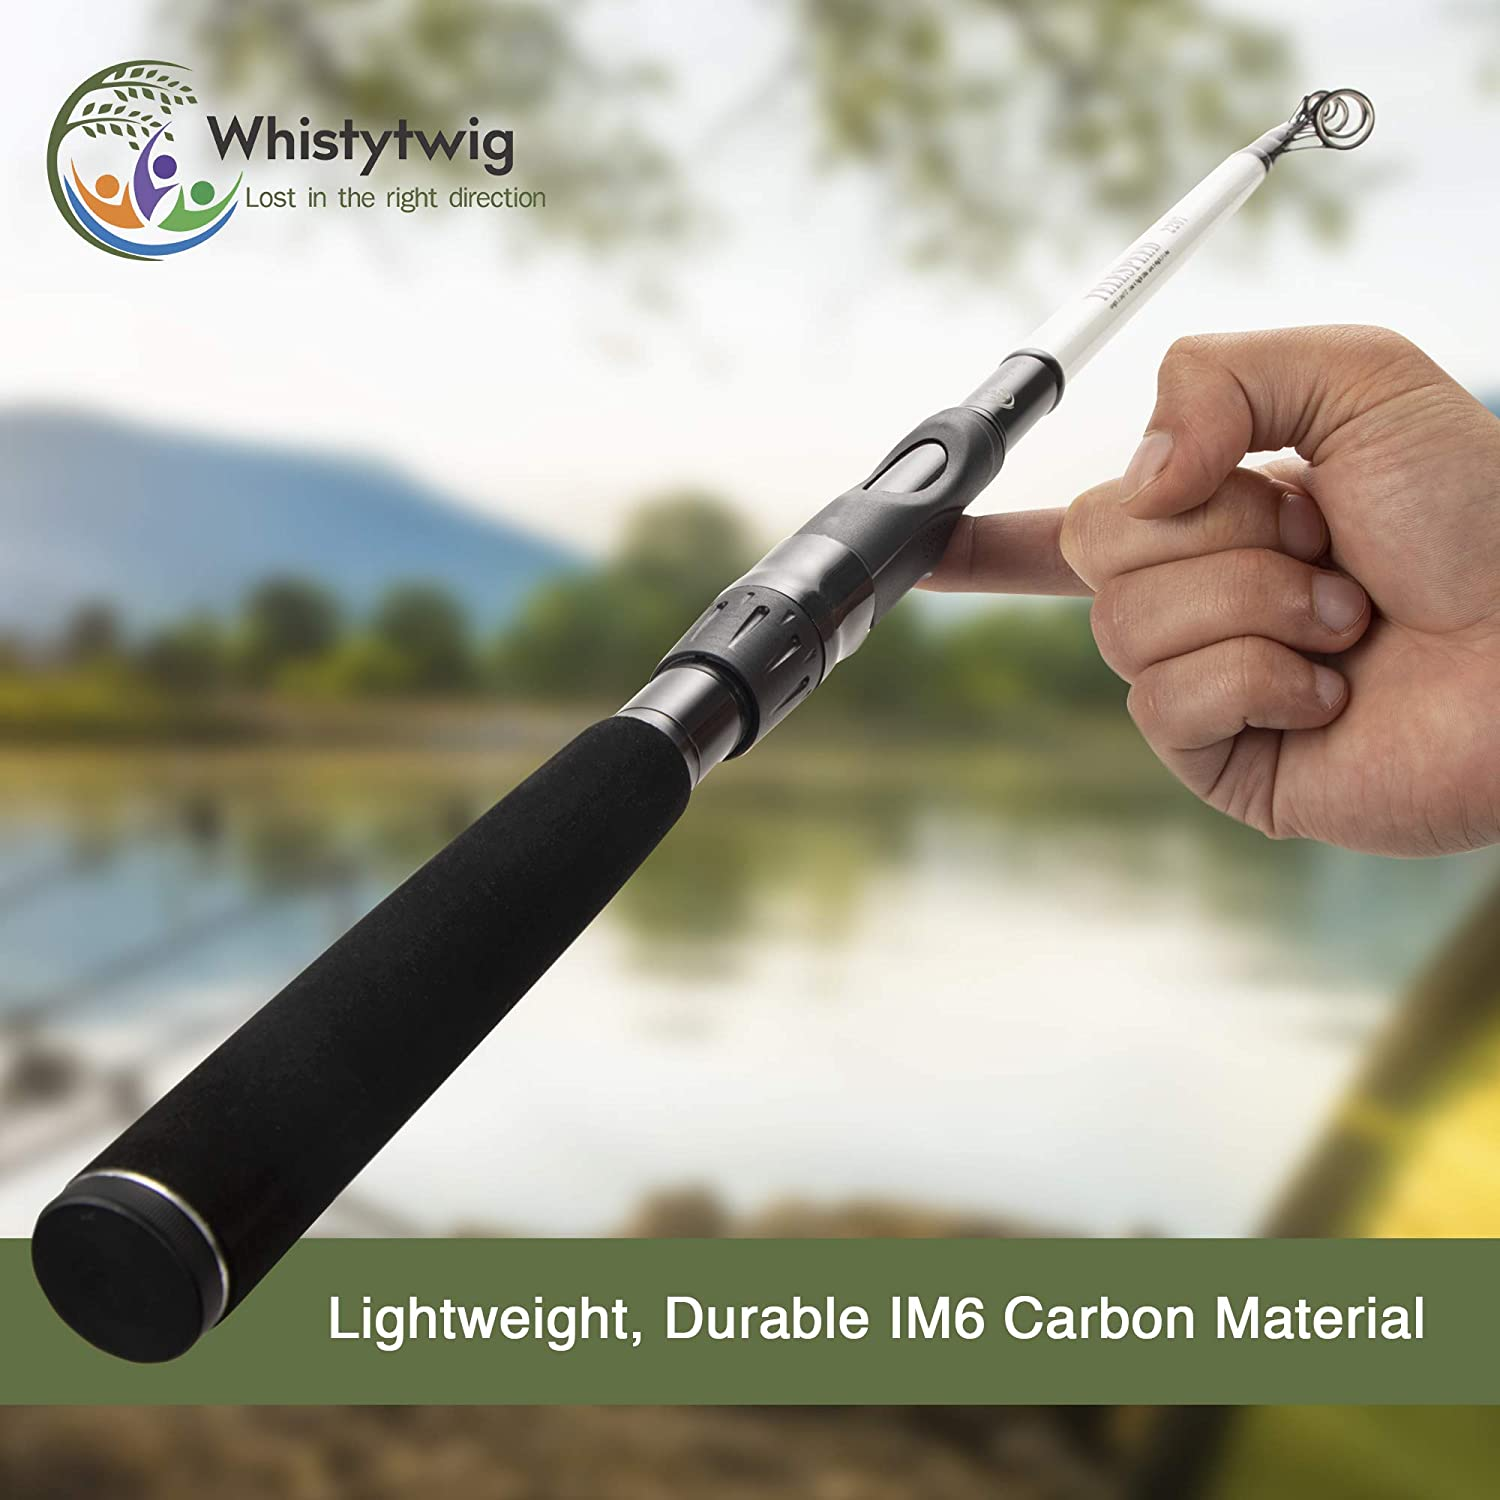 Durable Poles Telespeed 2207 Boating Trips Whistytwig Telescopic Fishing Rod Premium Quality Rods Lightweight Carbon Fiber Collapsible Freshwater and Saltwater Fishing Pole for Travel Gear